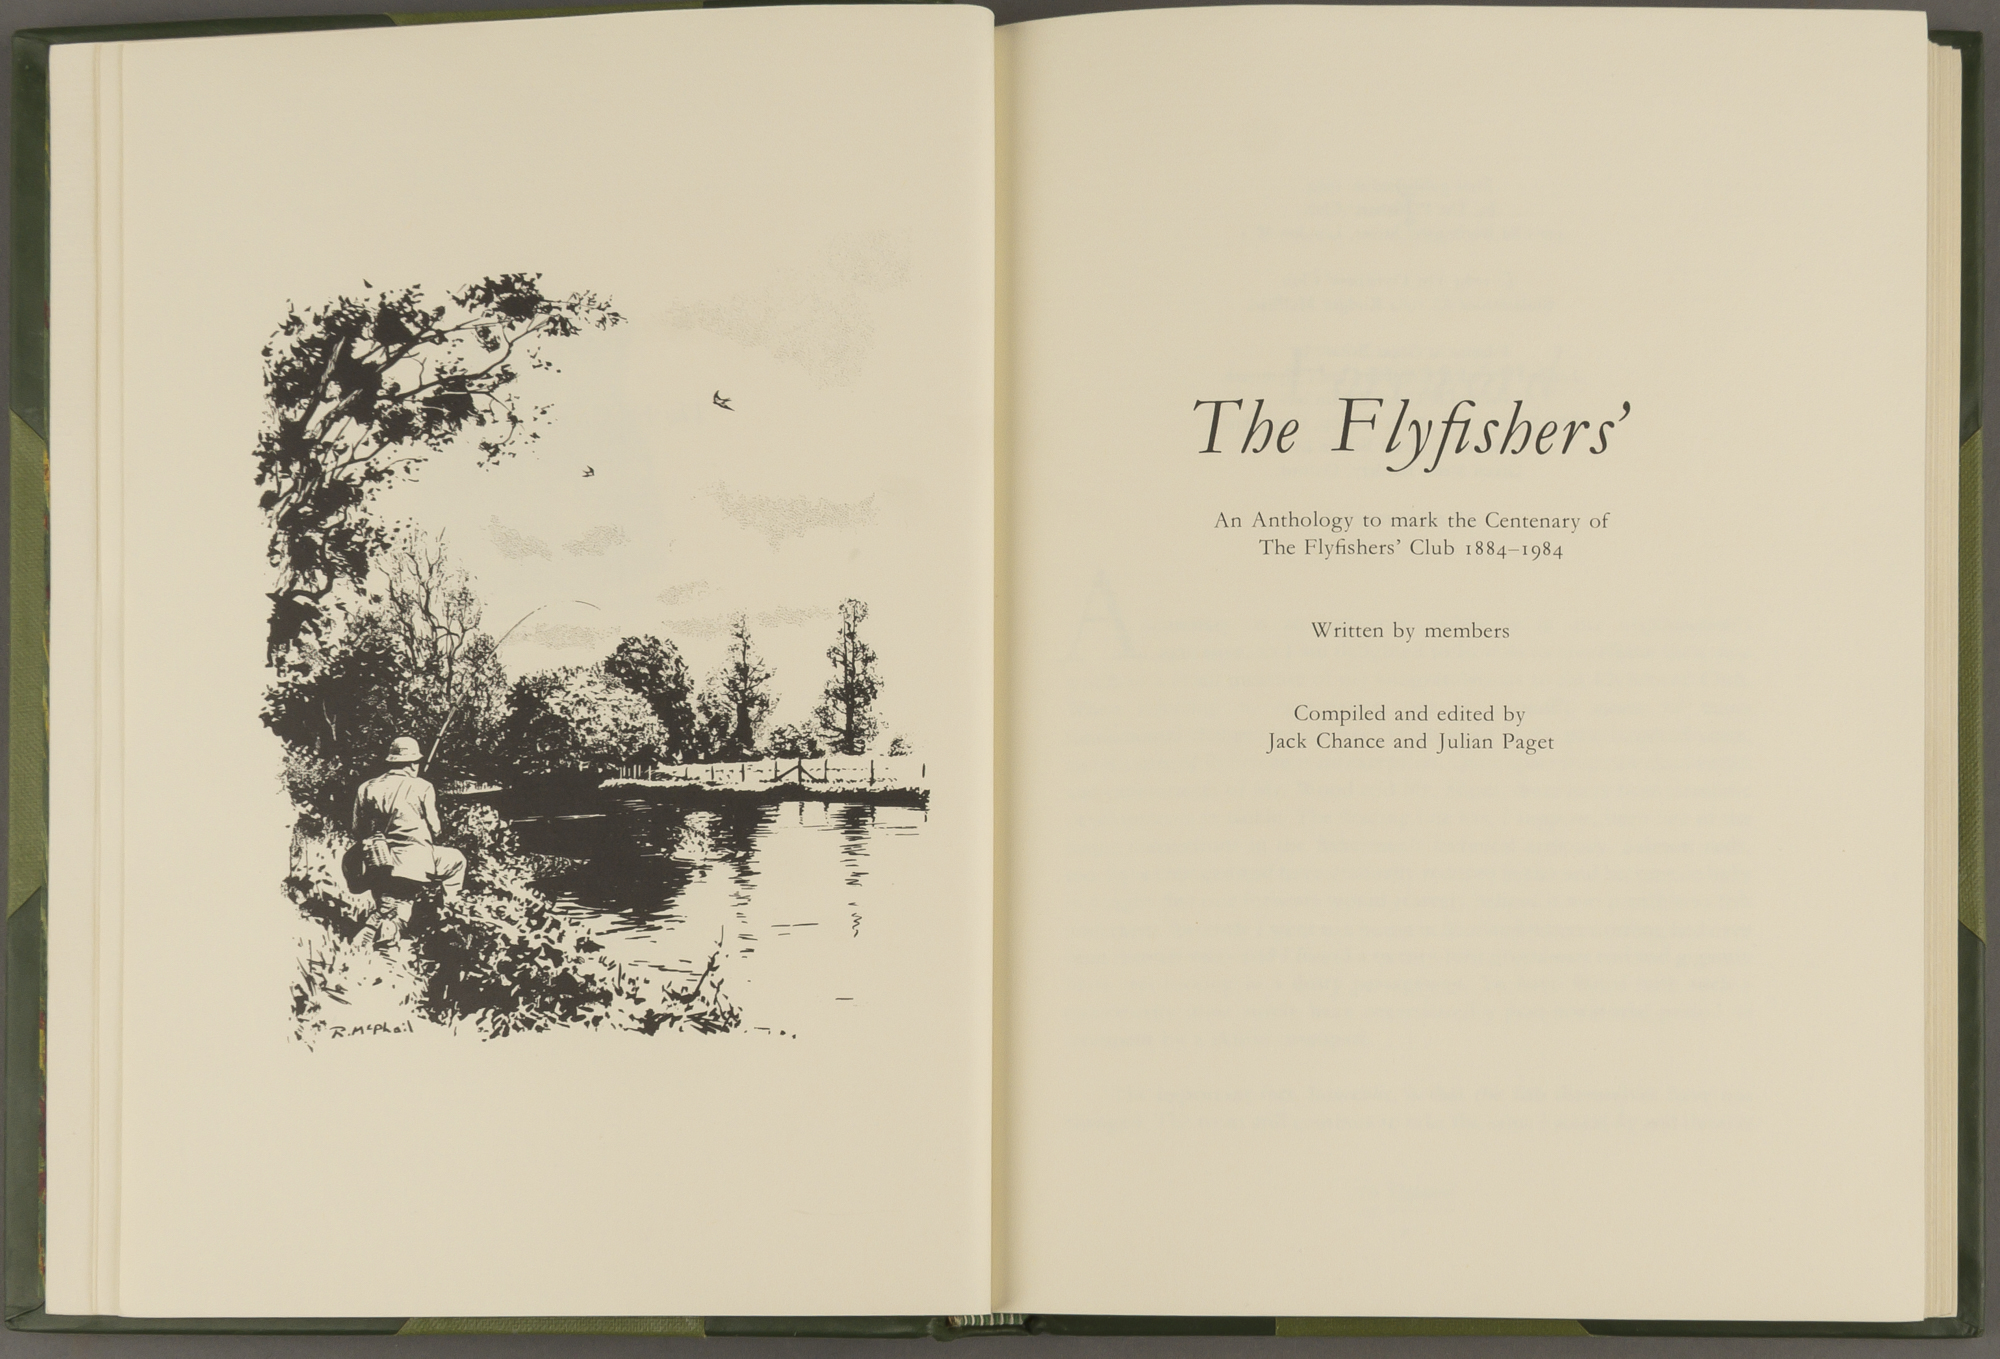 Lot image - CHANCE, JACK and PAGET, JULIAN  The Flyfishers: an Anthology to mark the Centenary of The Flyfishers Club 1884-1984.